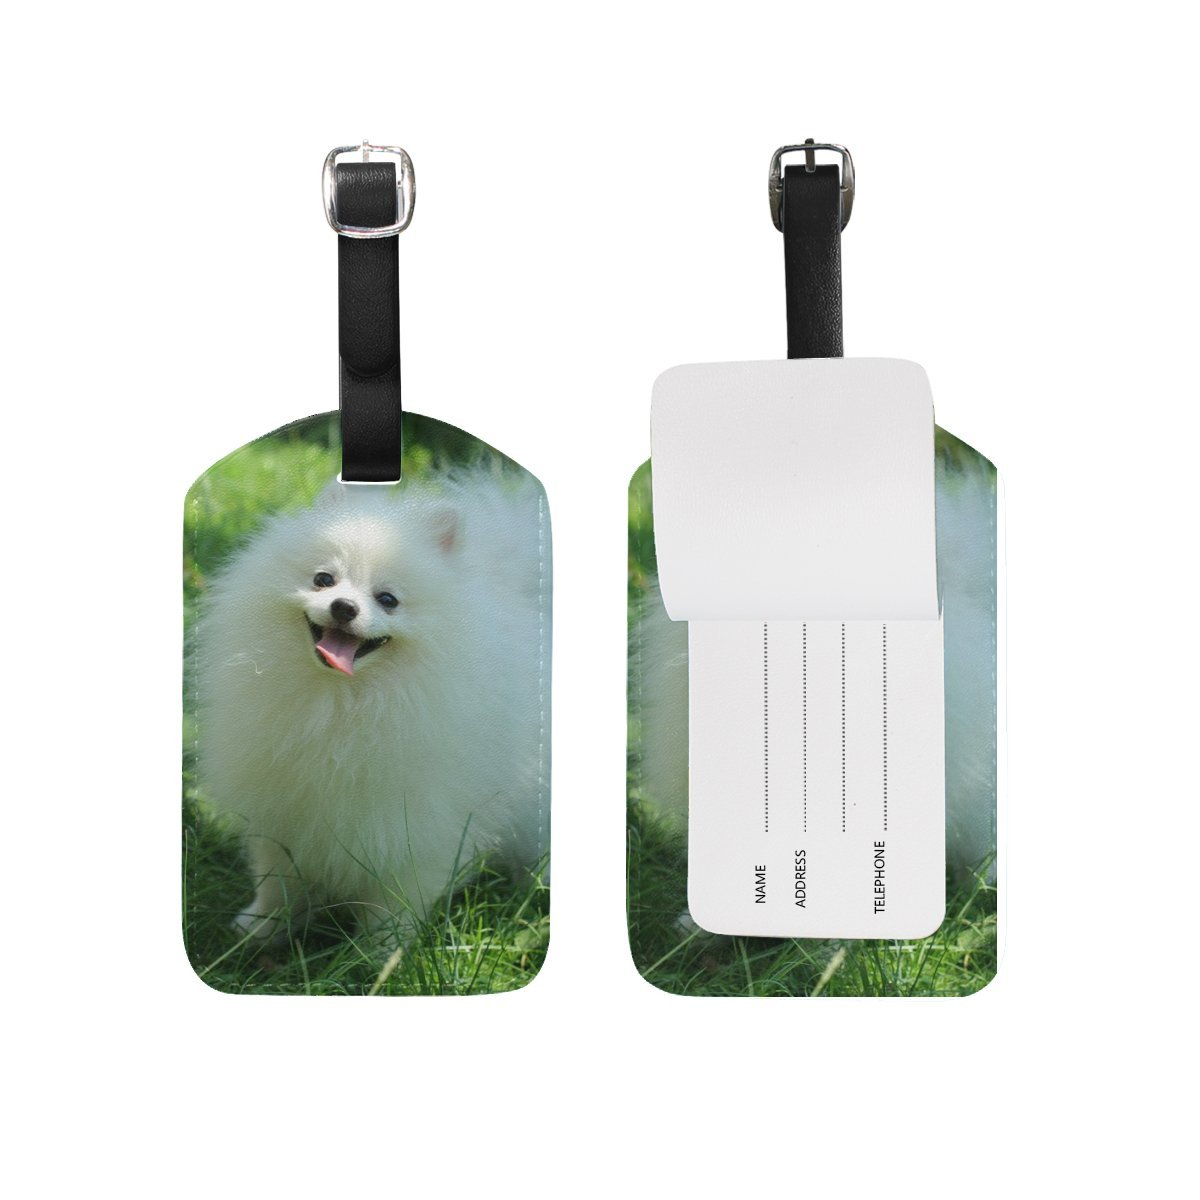 Animal Dog Pomeranian Small Fluffy Puppy Adorable Cute Pet Travel Genuine Leather Luggage Tags Id Labels Holders(2 Pcs Set)